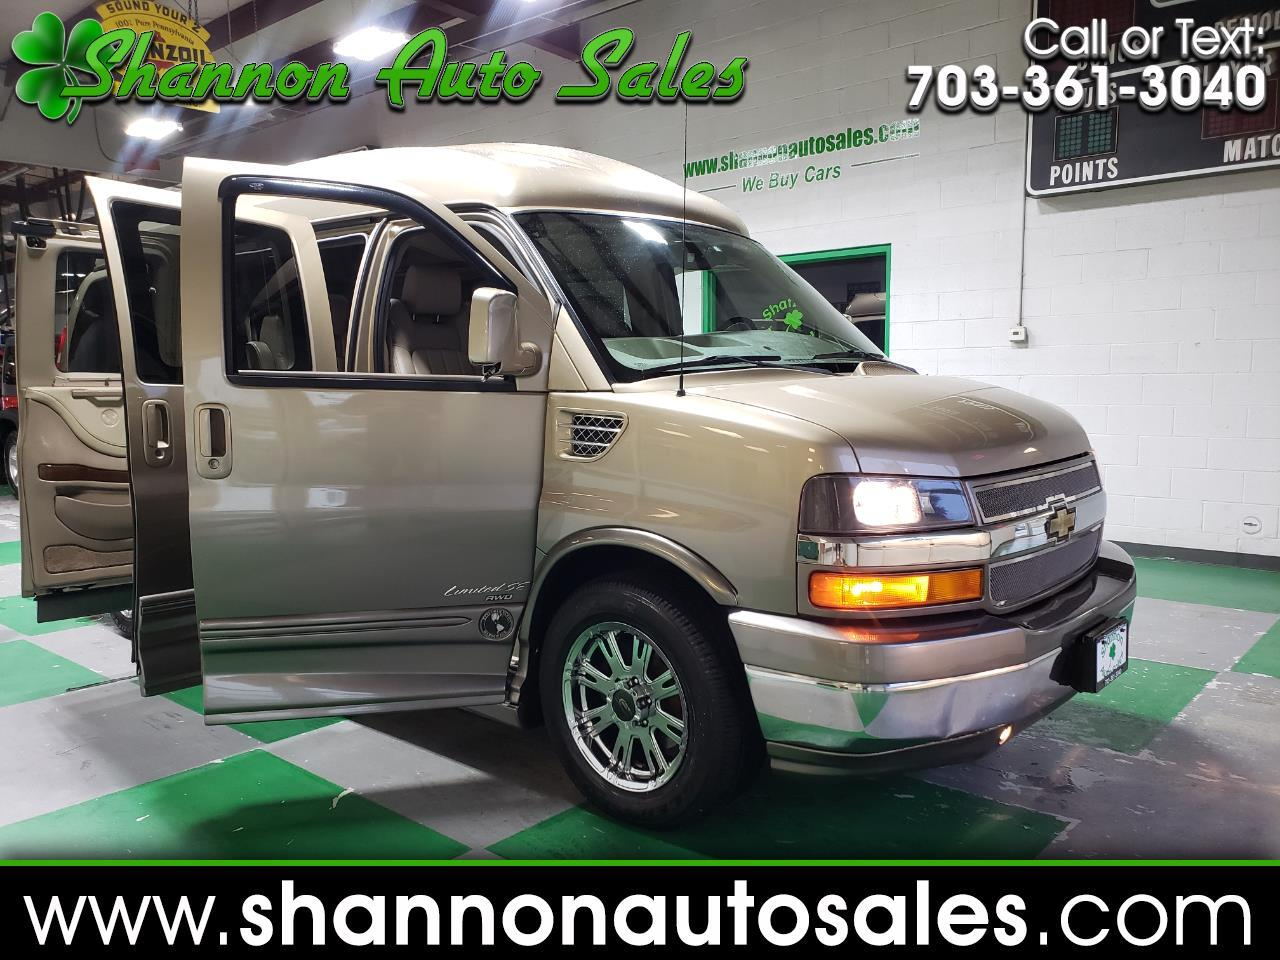 2012 Chevrolet Express 1500 AWD EXPLORER LIMITED SE EDITION CONVERSION VA